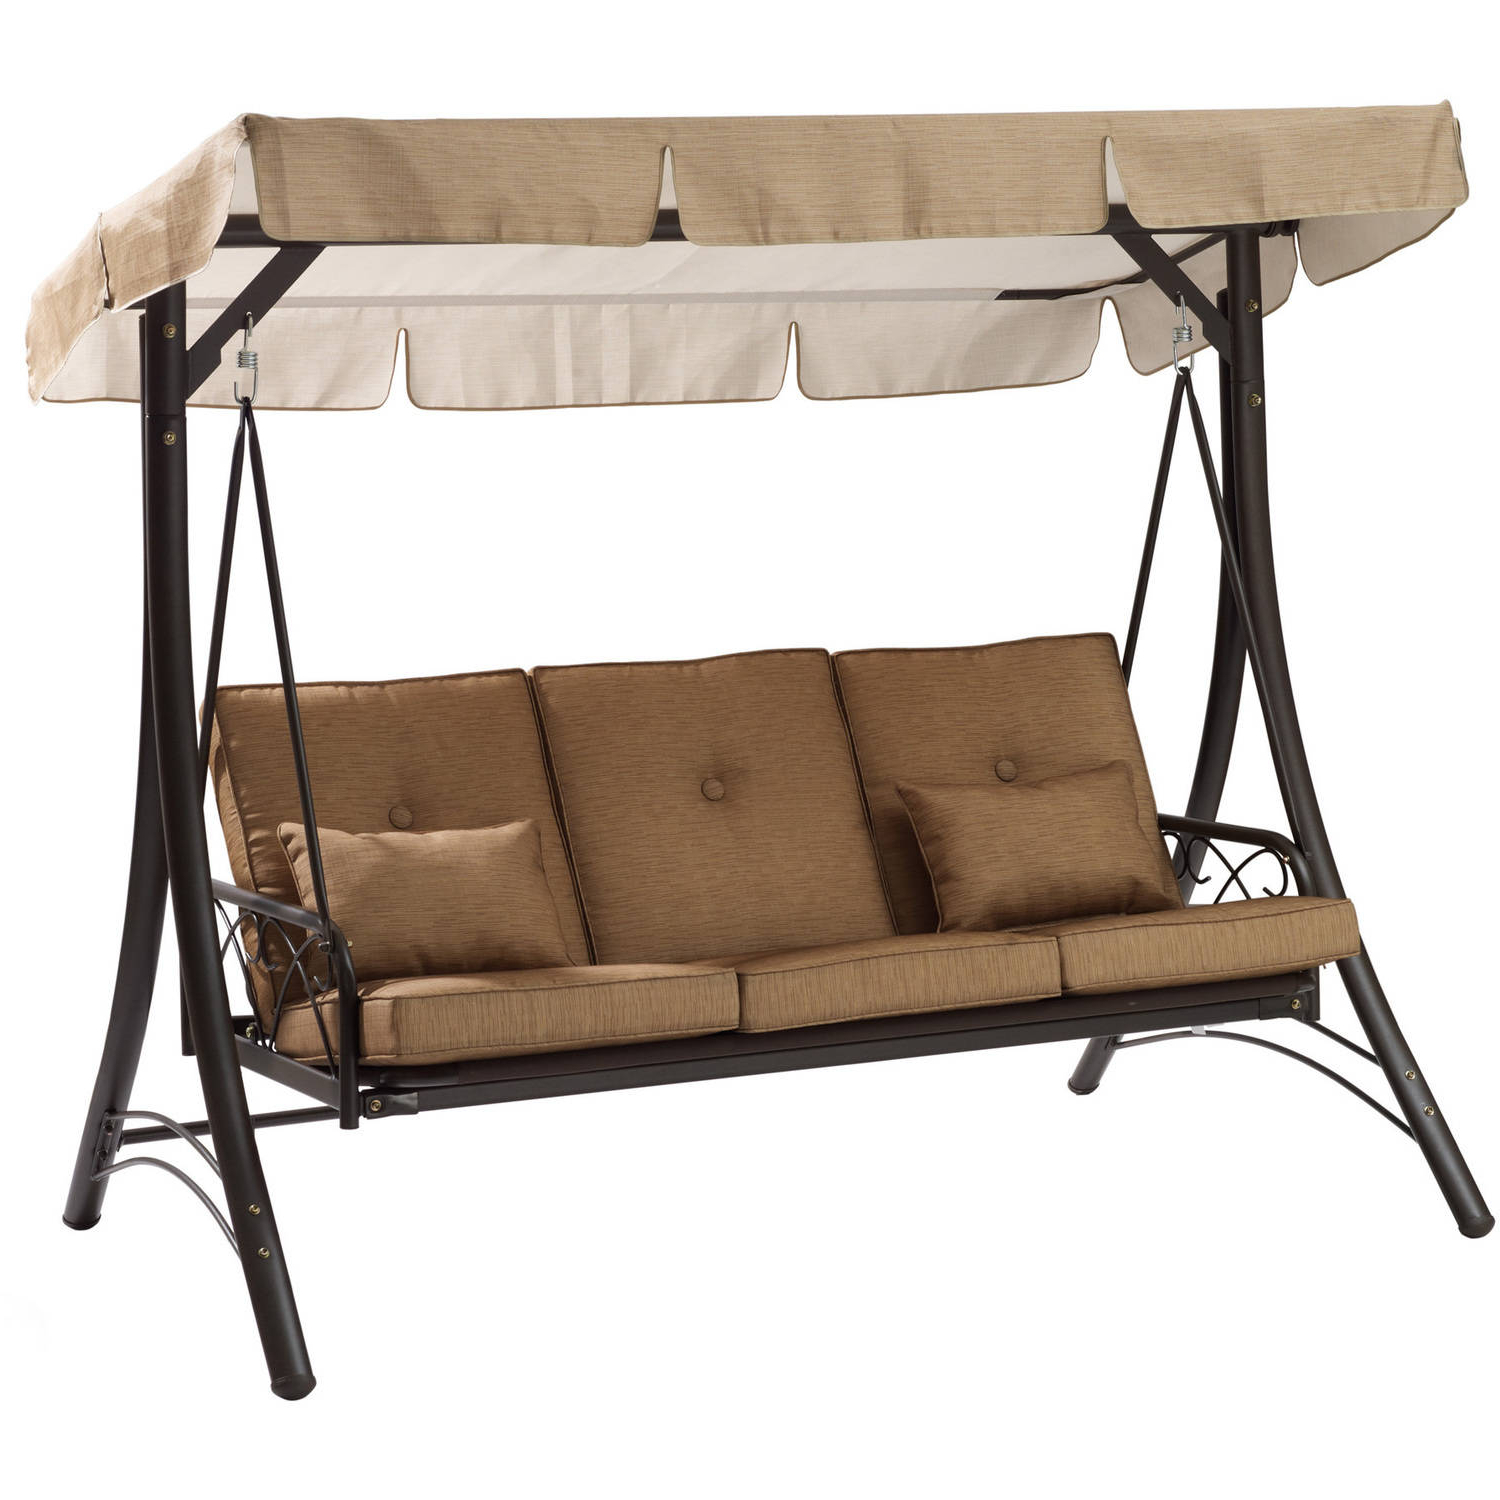 Mainstays Lawson Ridge Converting Outdoor Swing/hammock In Fashionable 3 Seater Swings With Frame And Canopy (View 29 of 30)